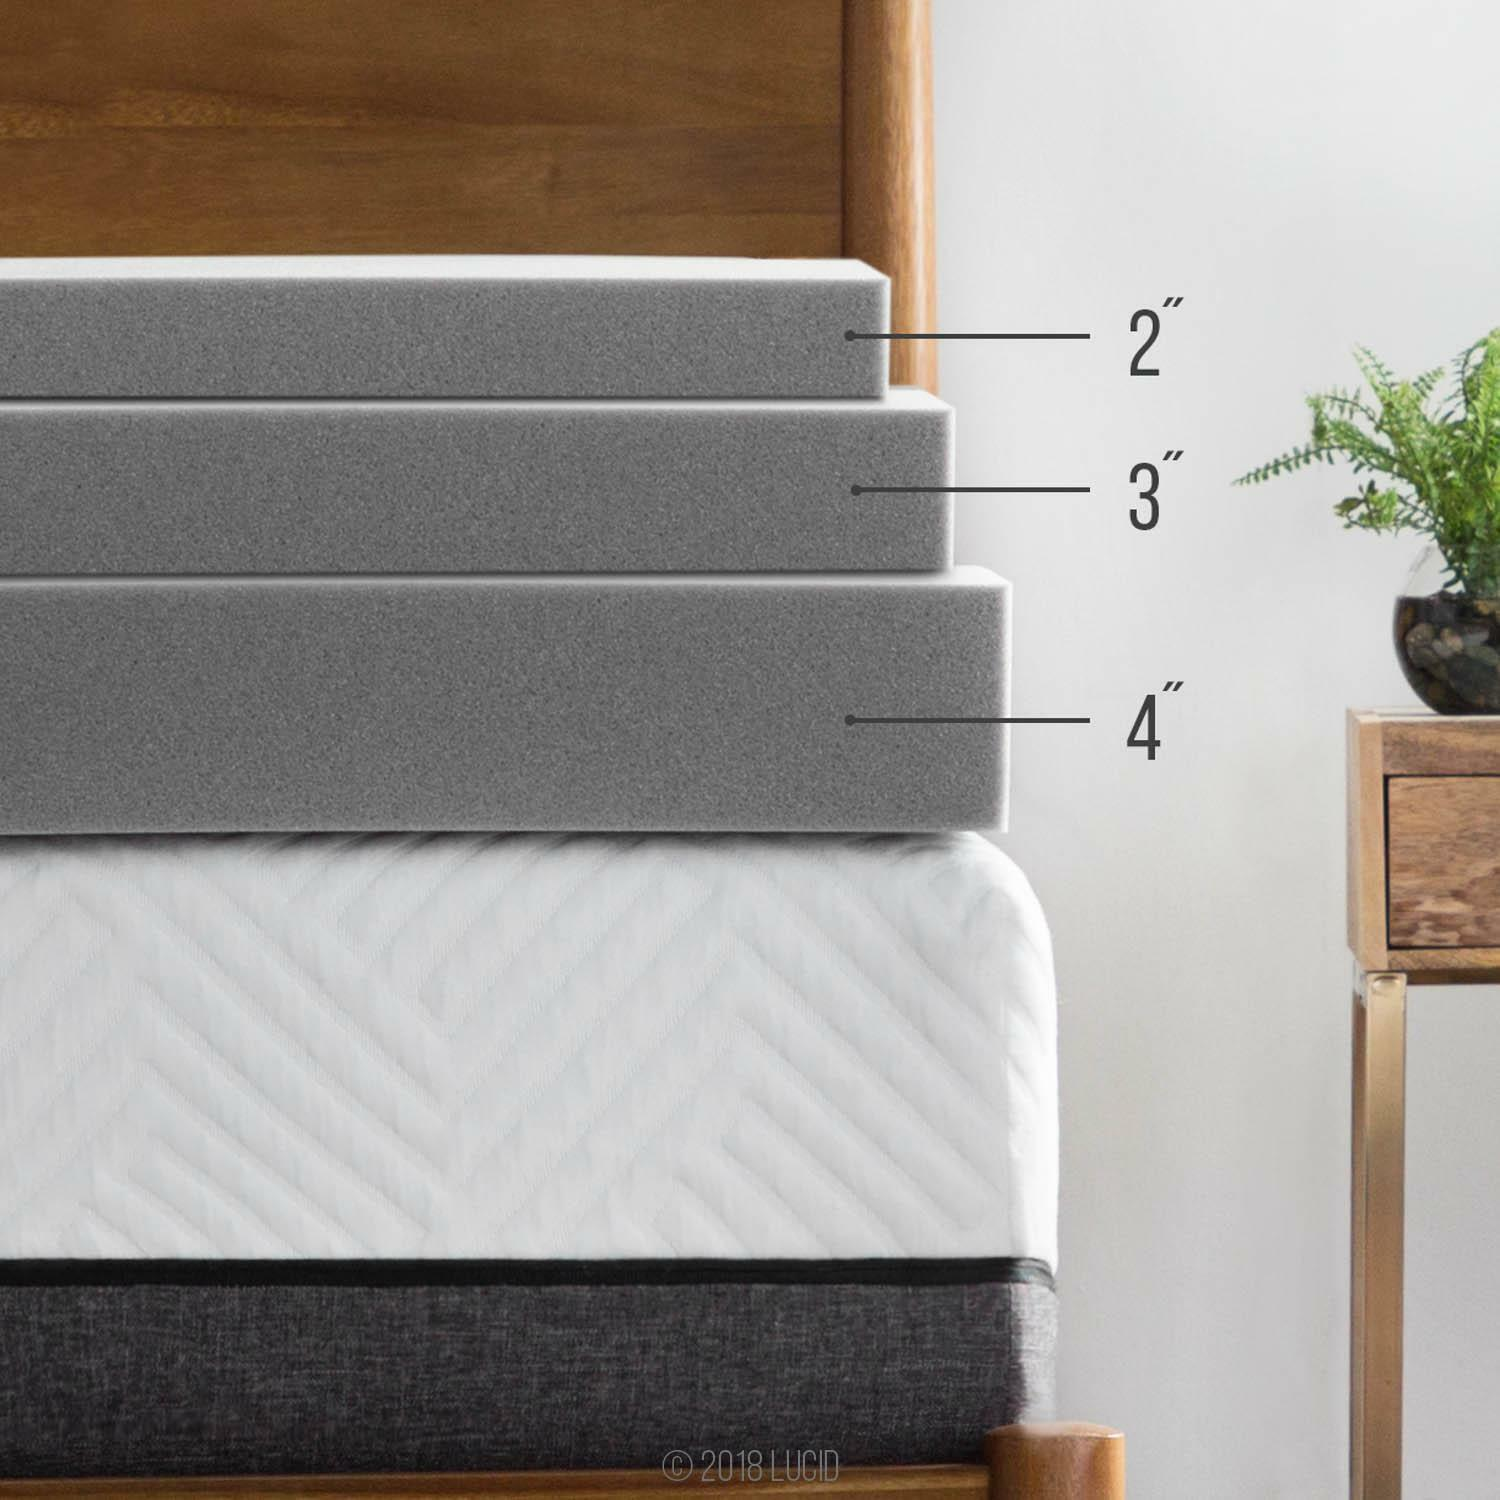 LUCID Bamboo Charcoal Memory Foam Mattress Topper - 2/3/4 In